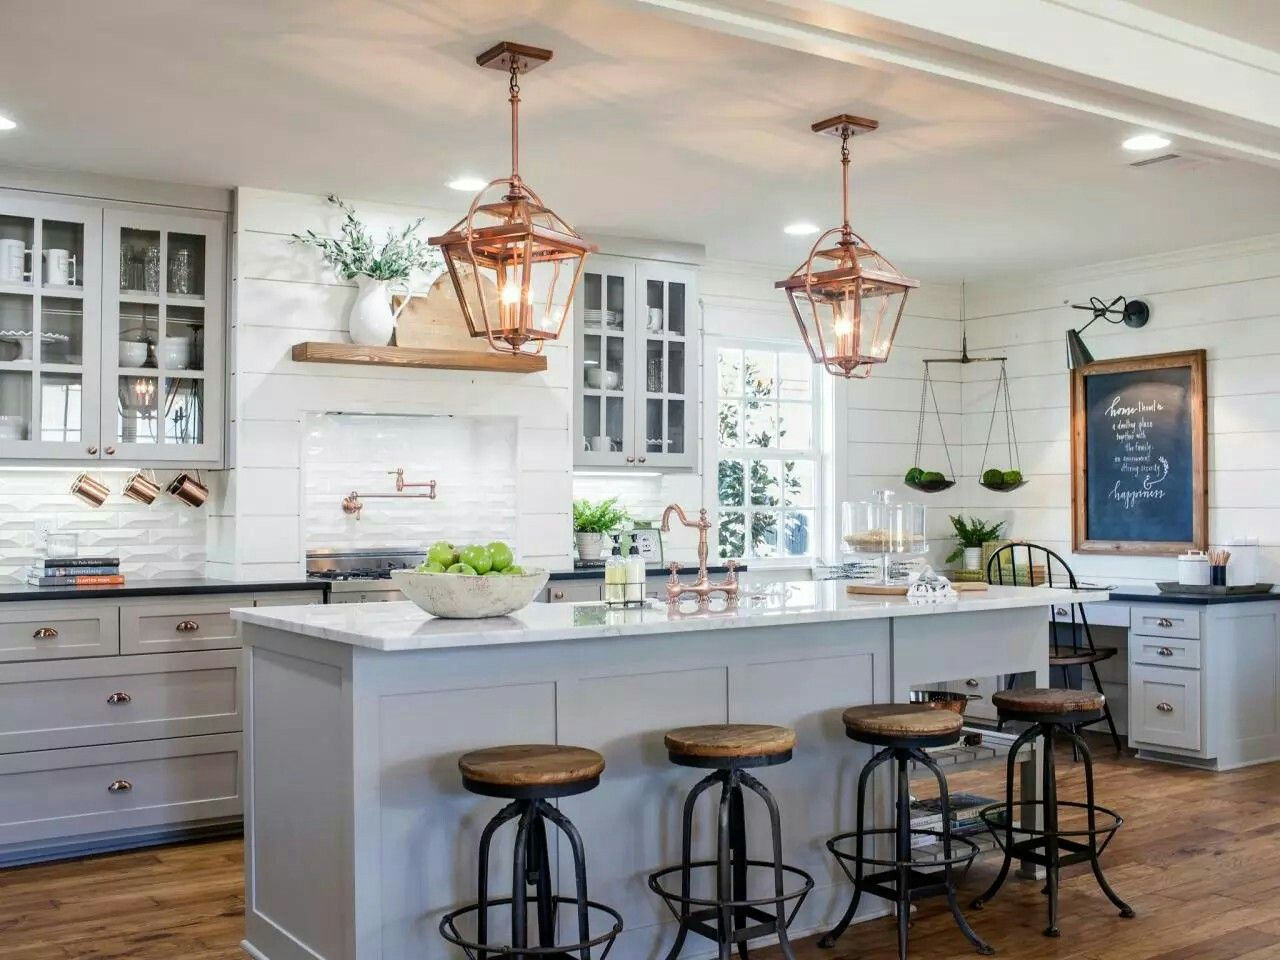 Pin by june maddy on fixer upper | Pinterest | Kitchens, Modern ...